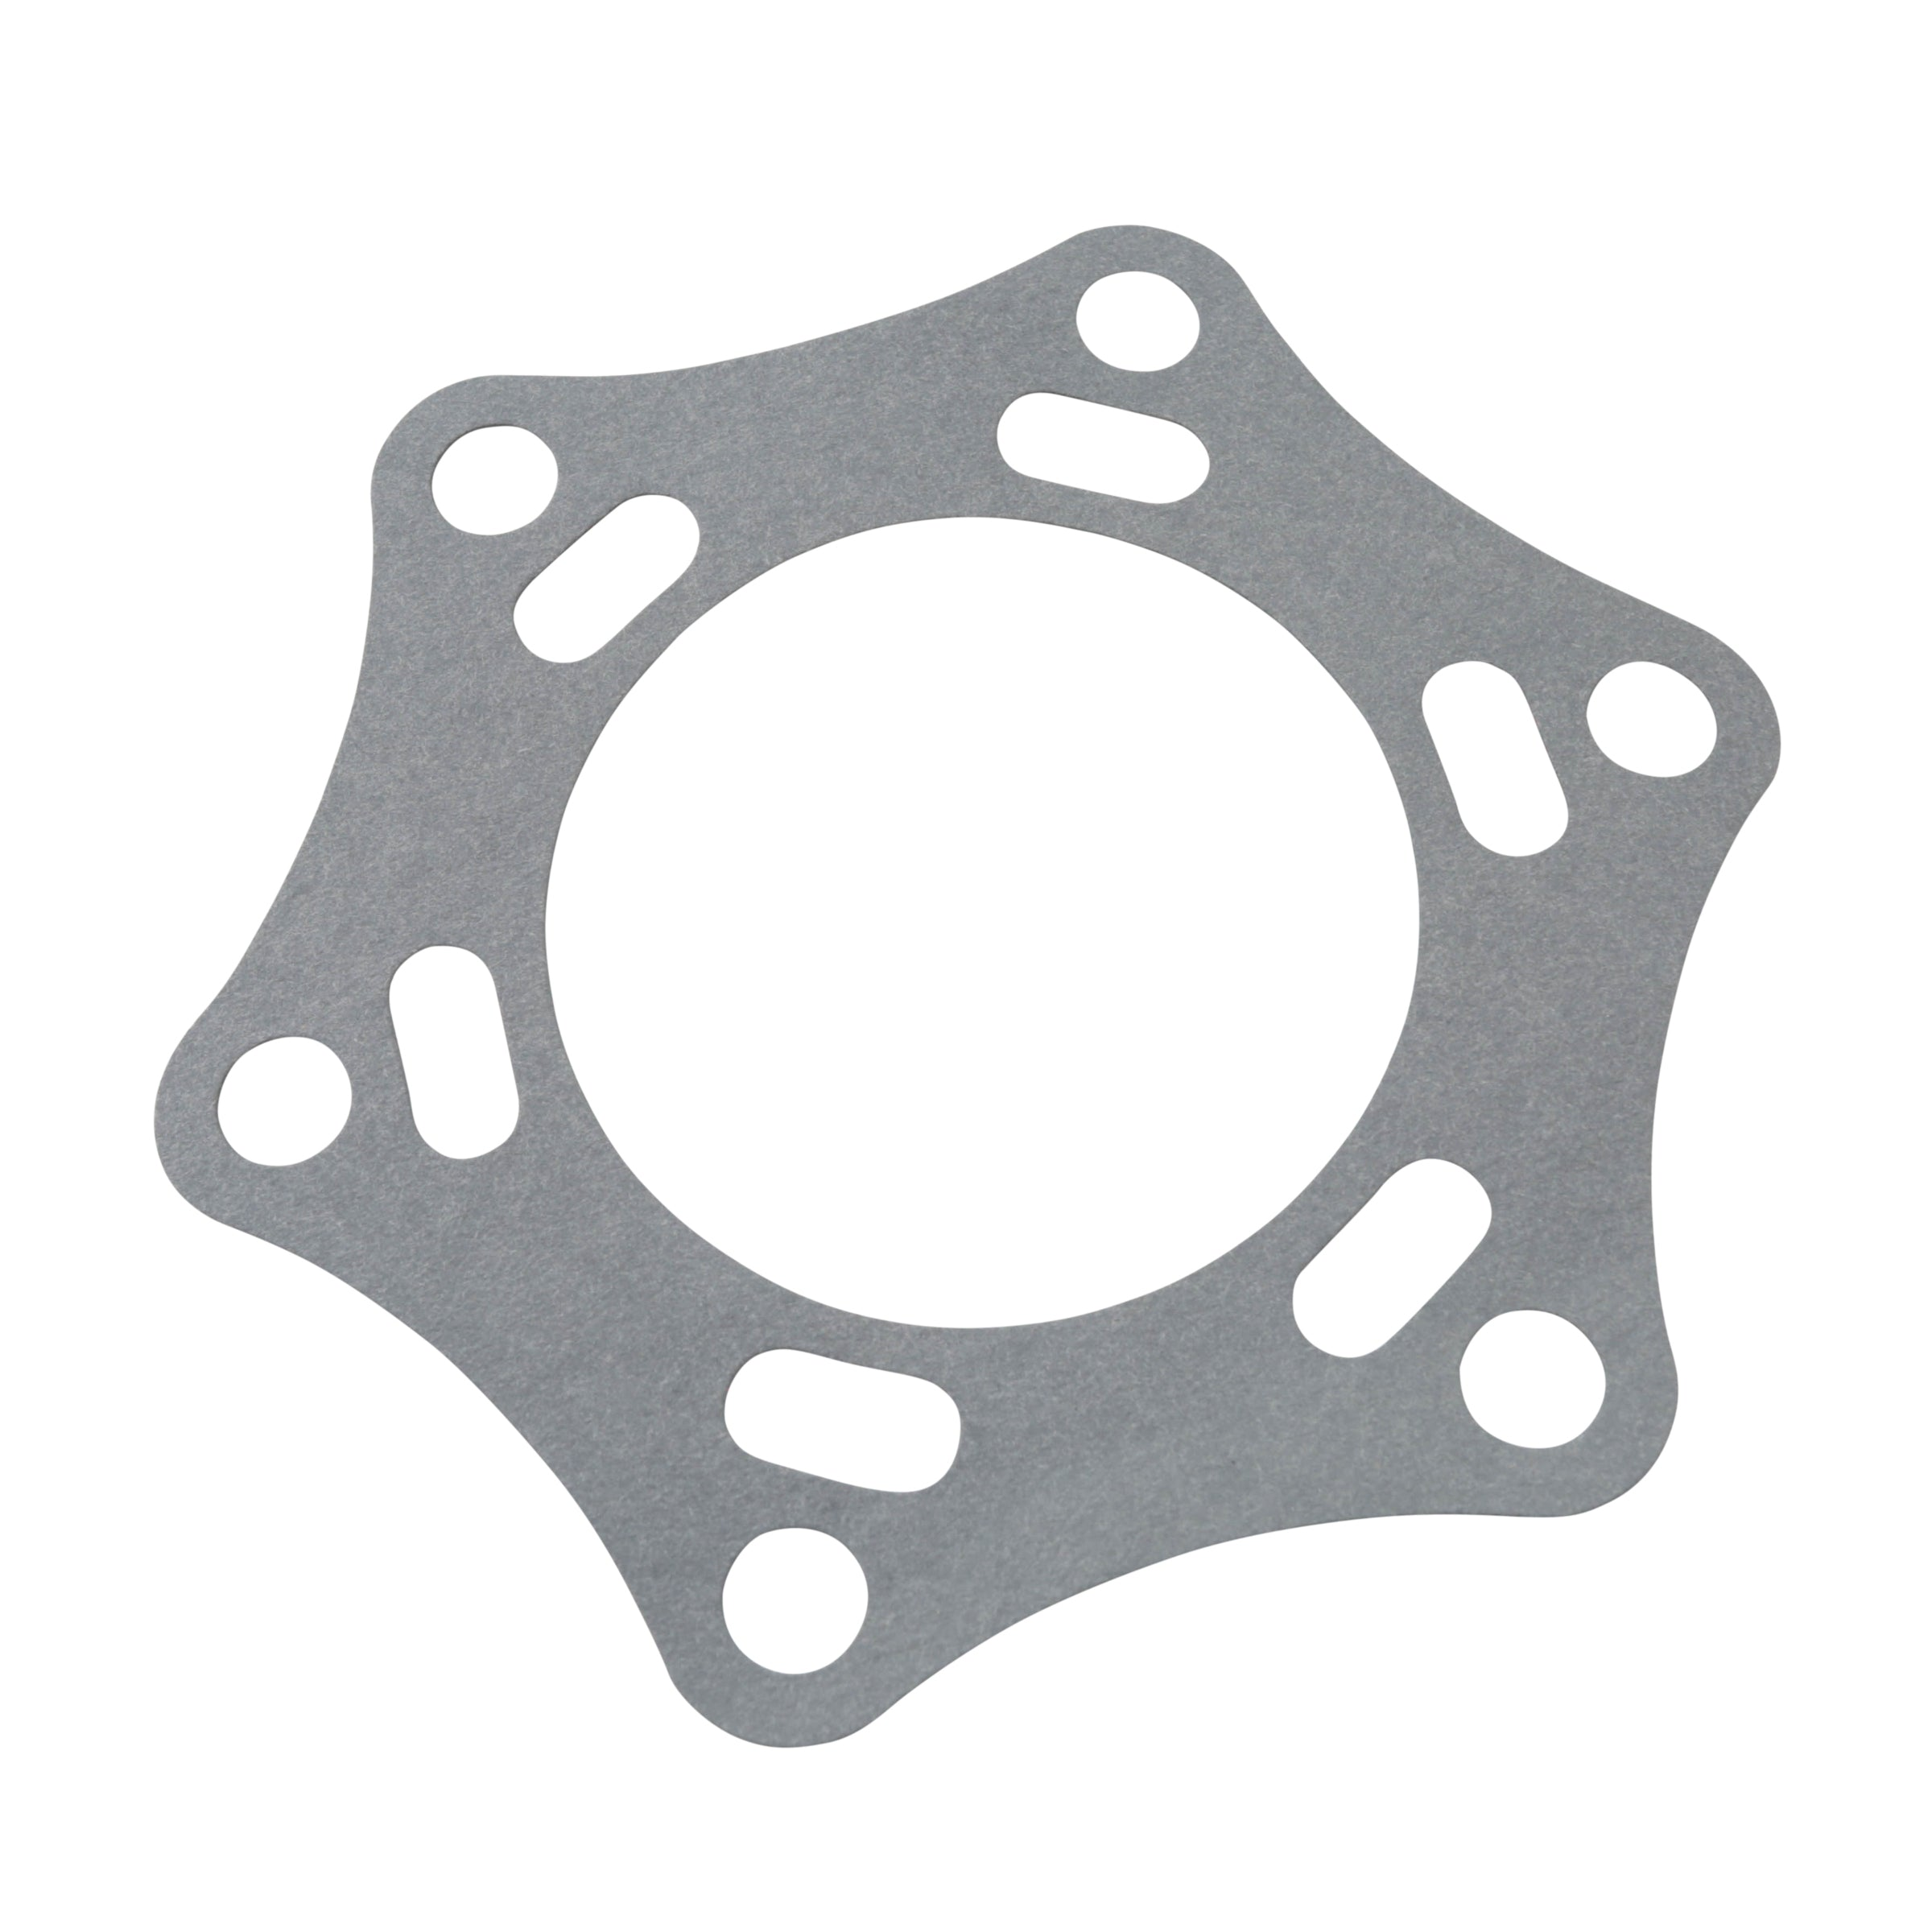 Torque Tube Rear Gasket • 1932-34 Ford